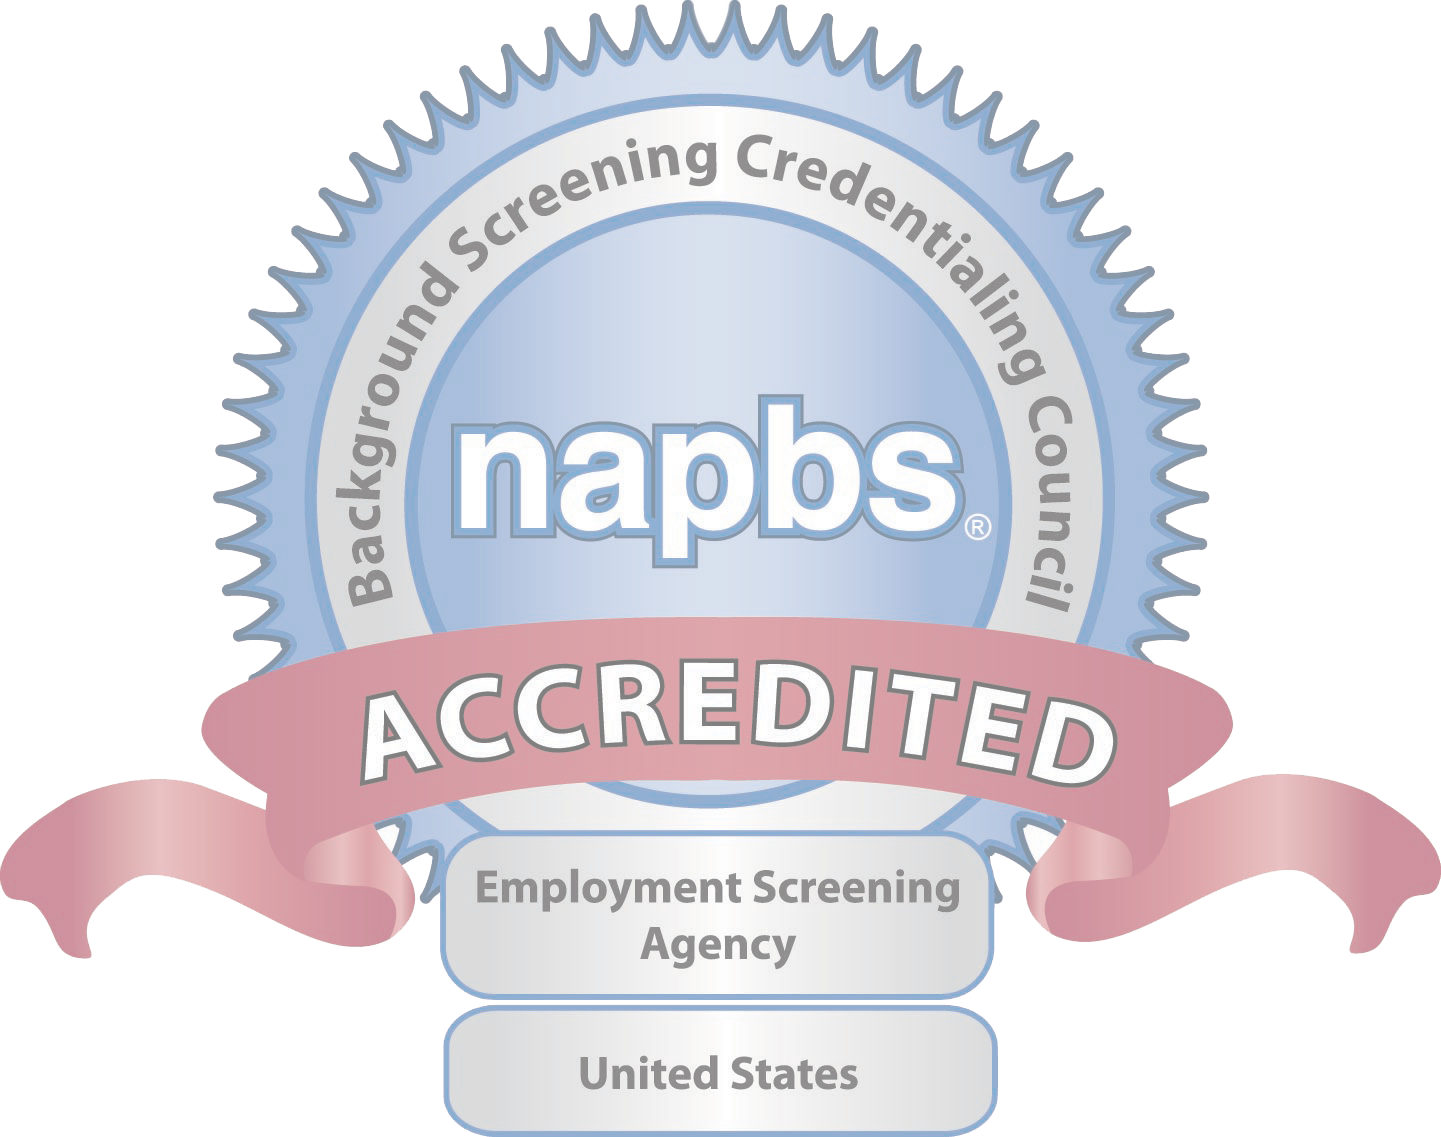 NABPSaccredited_50